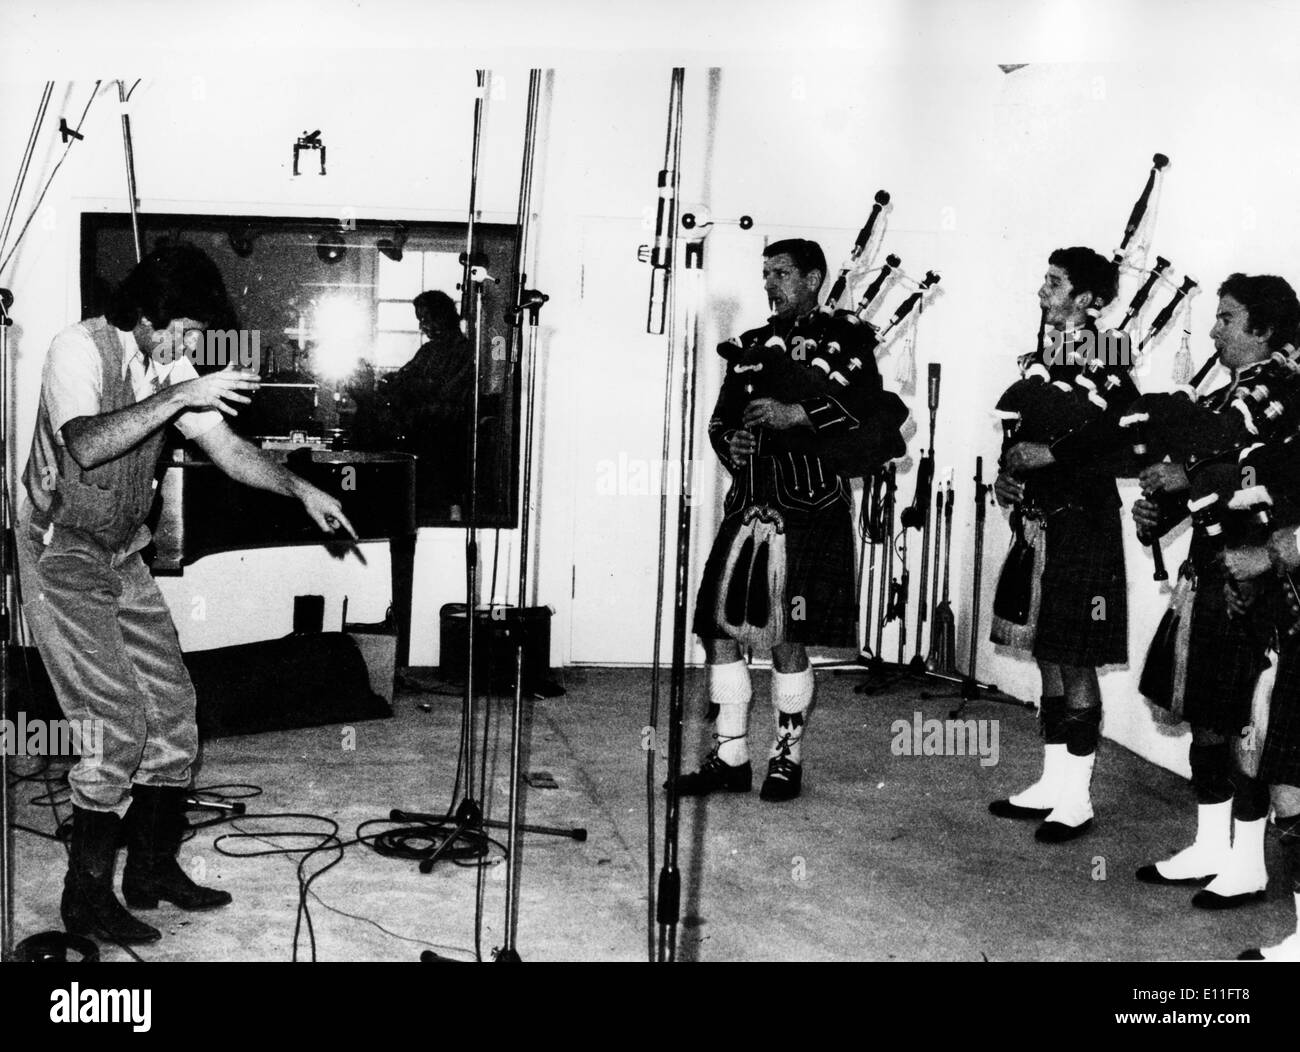 Nov 04, 1977; Campbeltown , Scotland; Singer, Songwriter, PAUL MCCARTNEY former member of the famous pop group 'The Beatles' recording with his band 'Wings'.. (Credit Image: KEYSTONE Pictures USA/ZUMAPRESS.com) - Stock Image